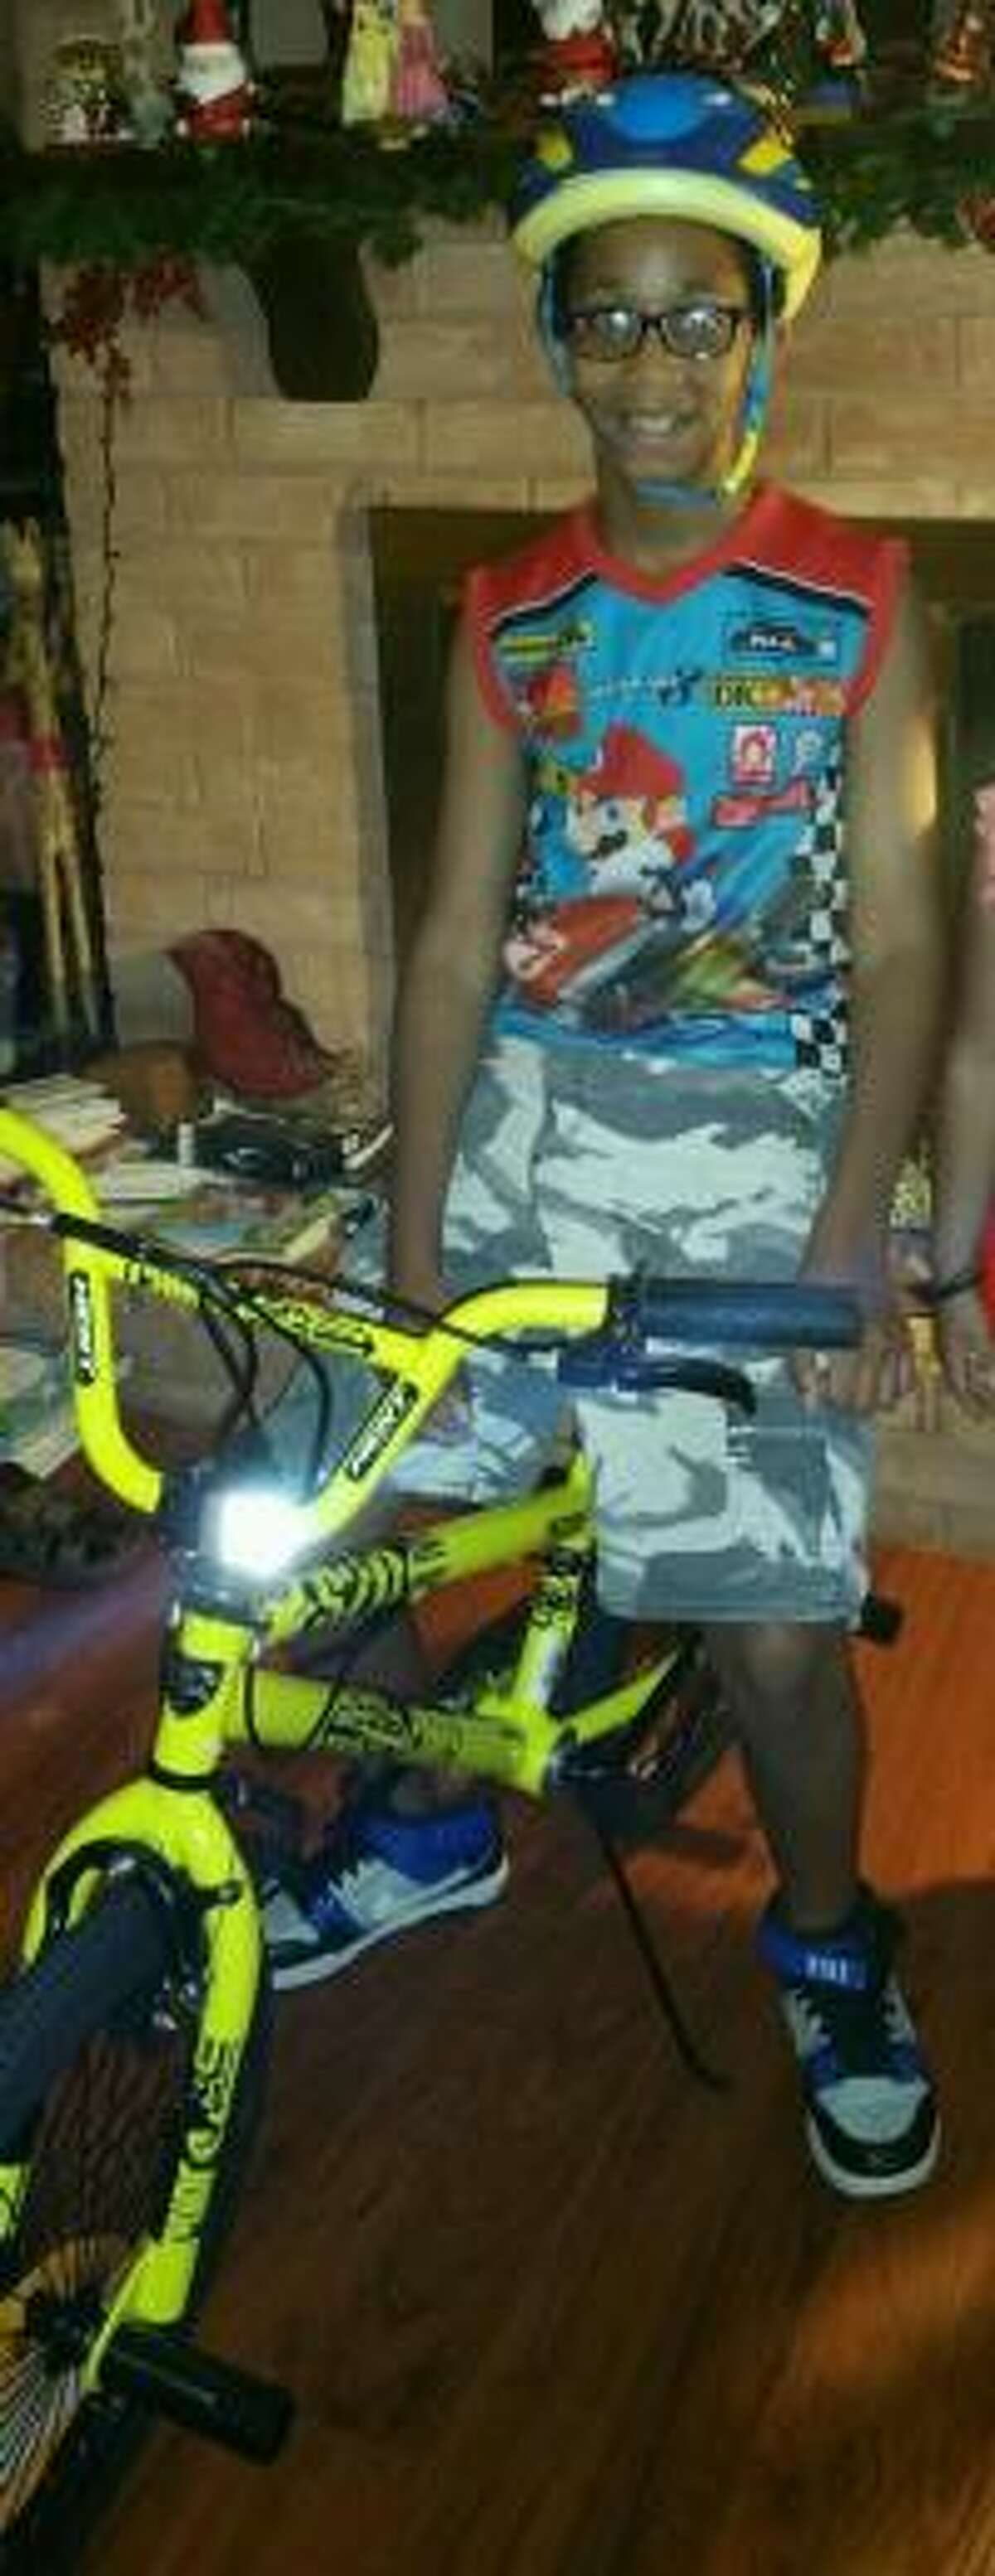 Friendswood police are searching for an 11-year-old boy named Kenneth, who went missing from the Forest Bend subdivision on Saturday, Dec. 10, 2016. Police believe Kenneth may have been spotted by people who attended the Friendswood holiday parade.